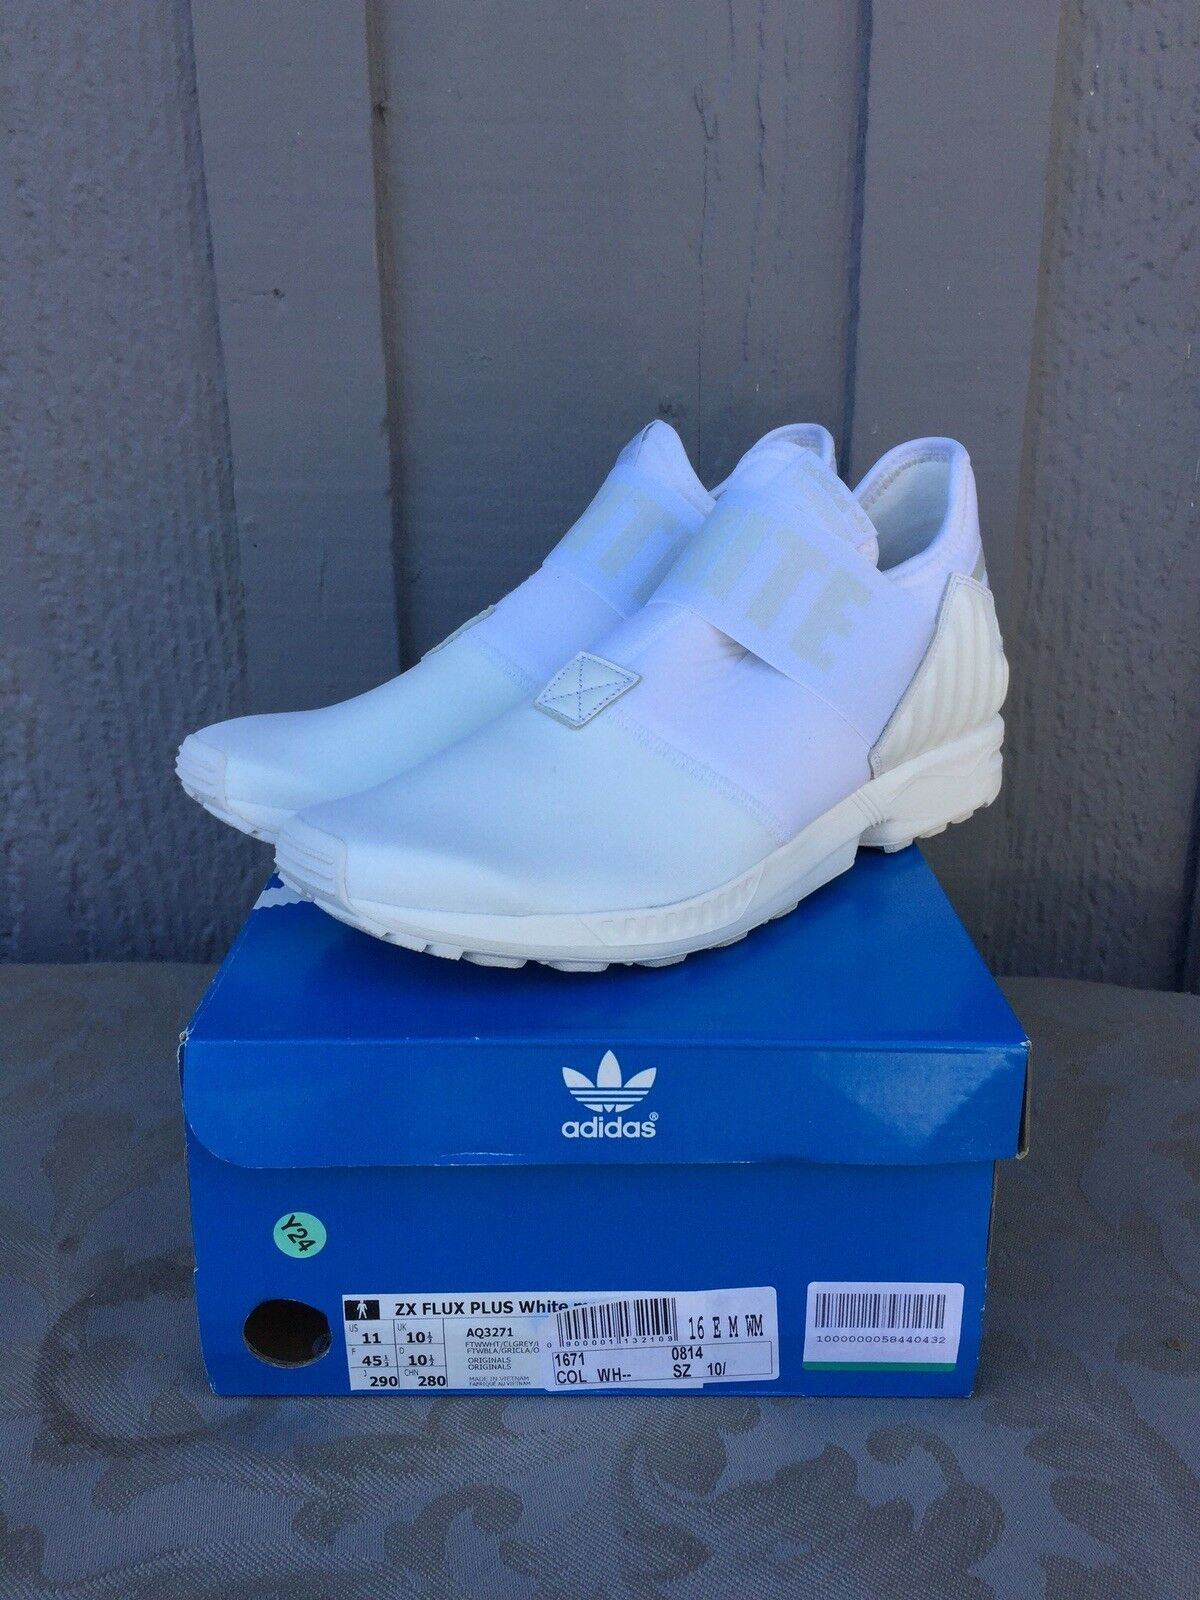 Adidas White Mountaineering Zx Flux White Size 11 New